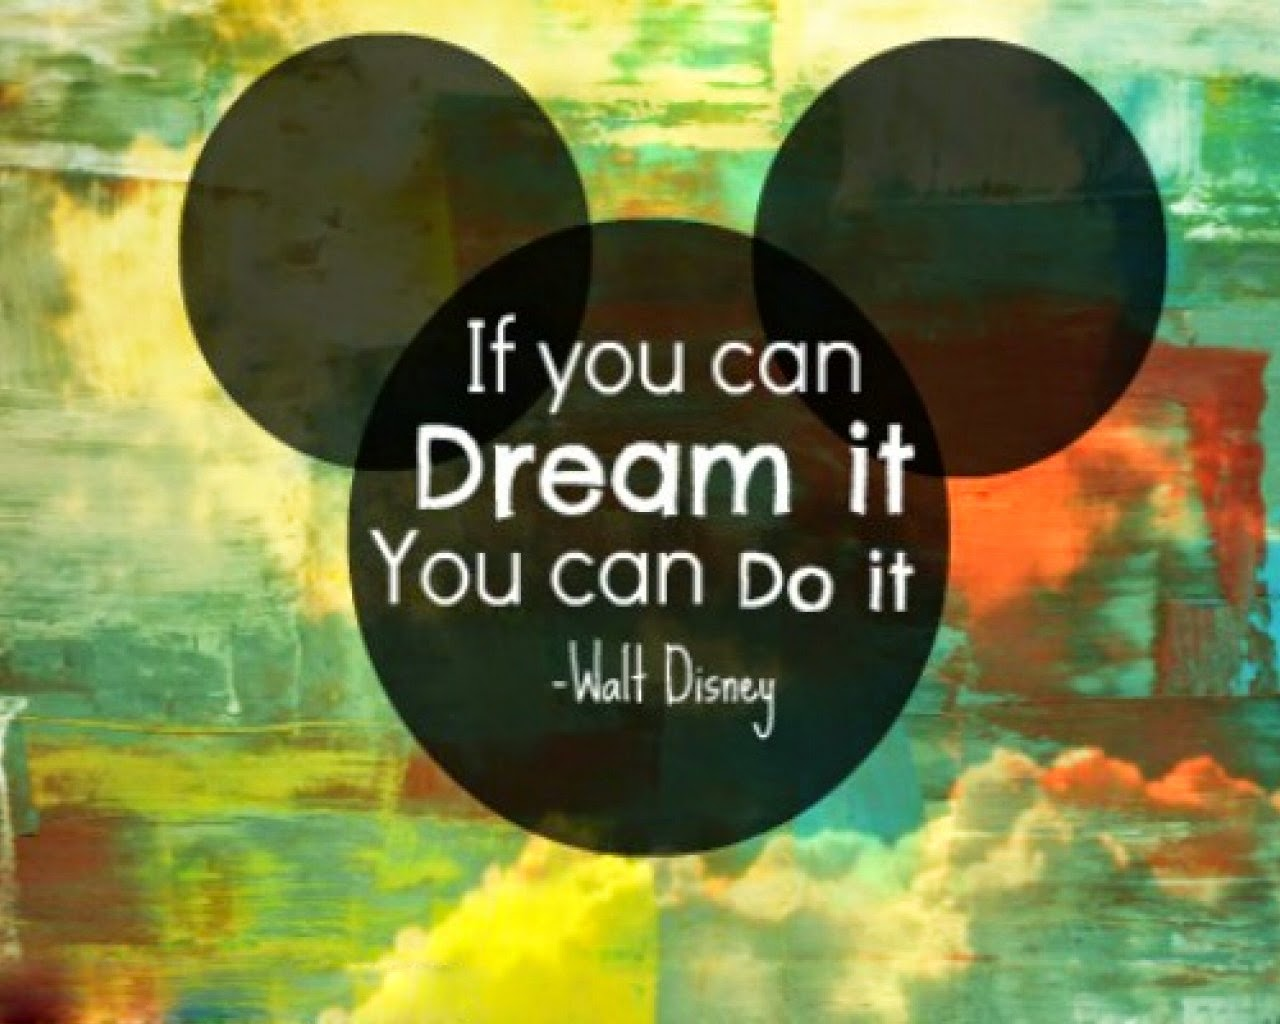 Download If You Can Dream It You Can Do It Wallpaper Gallery